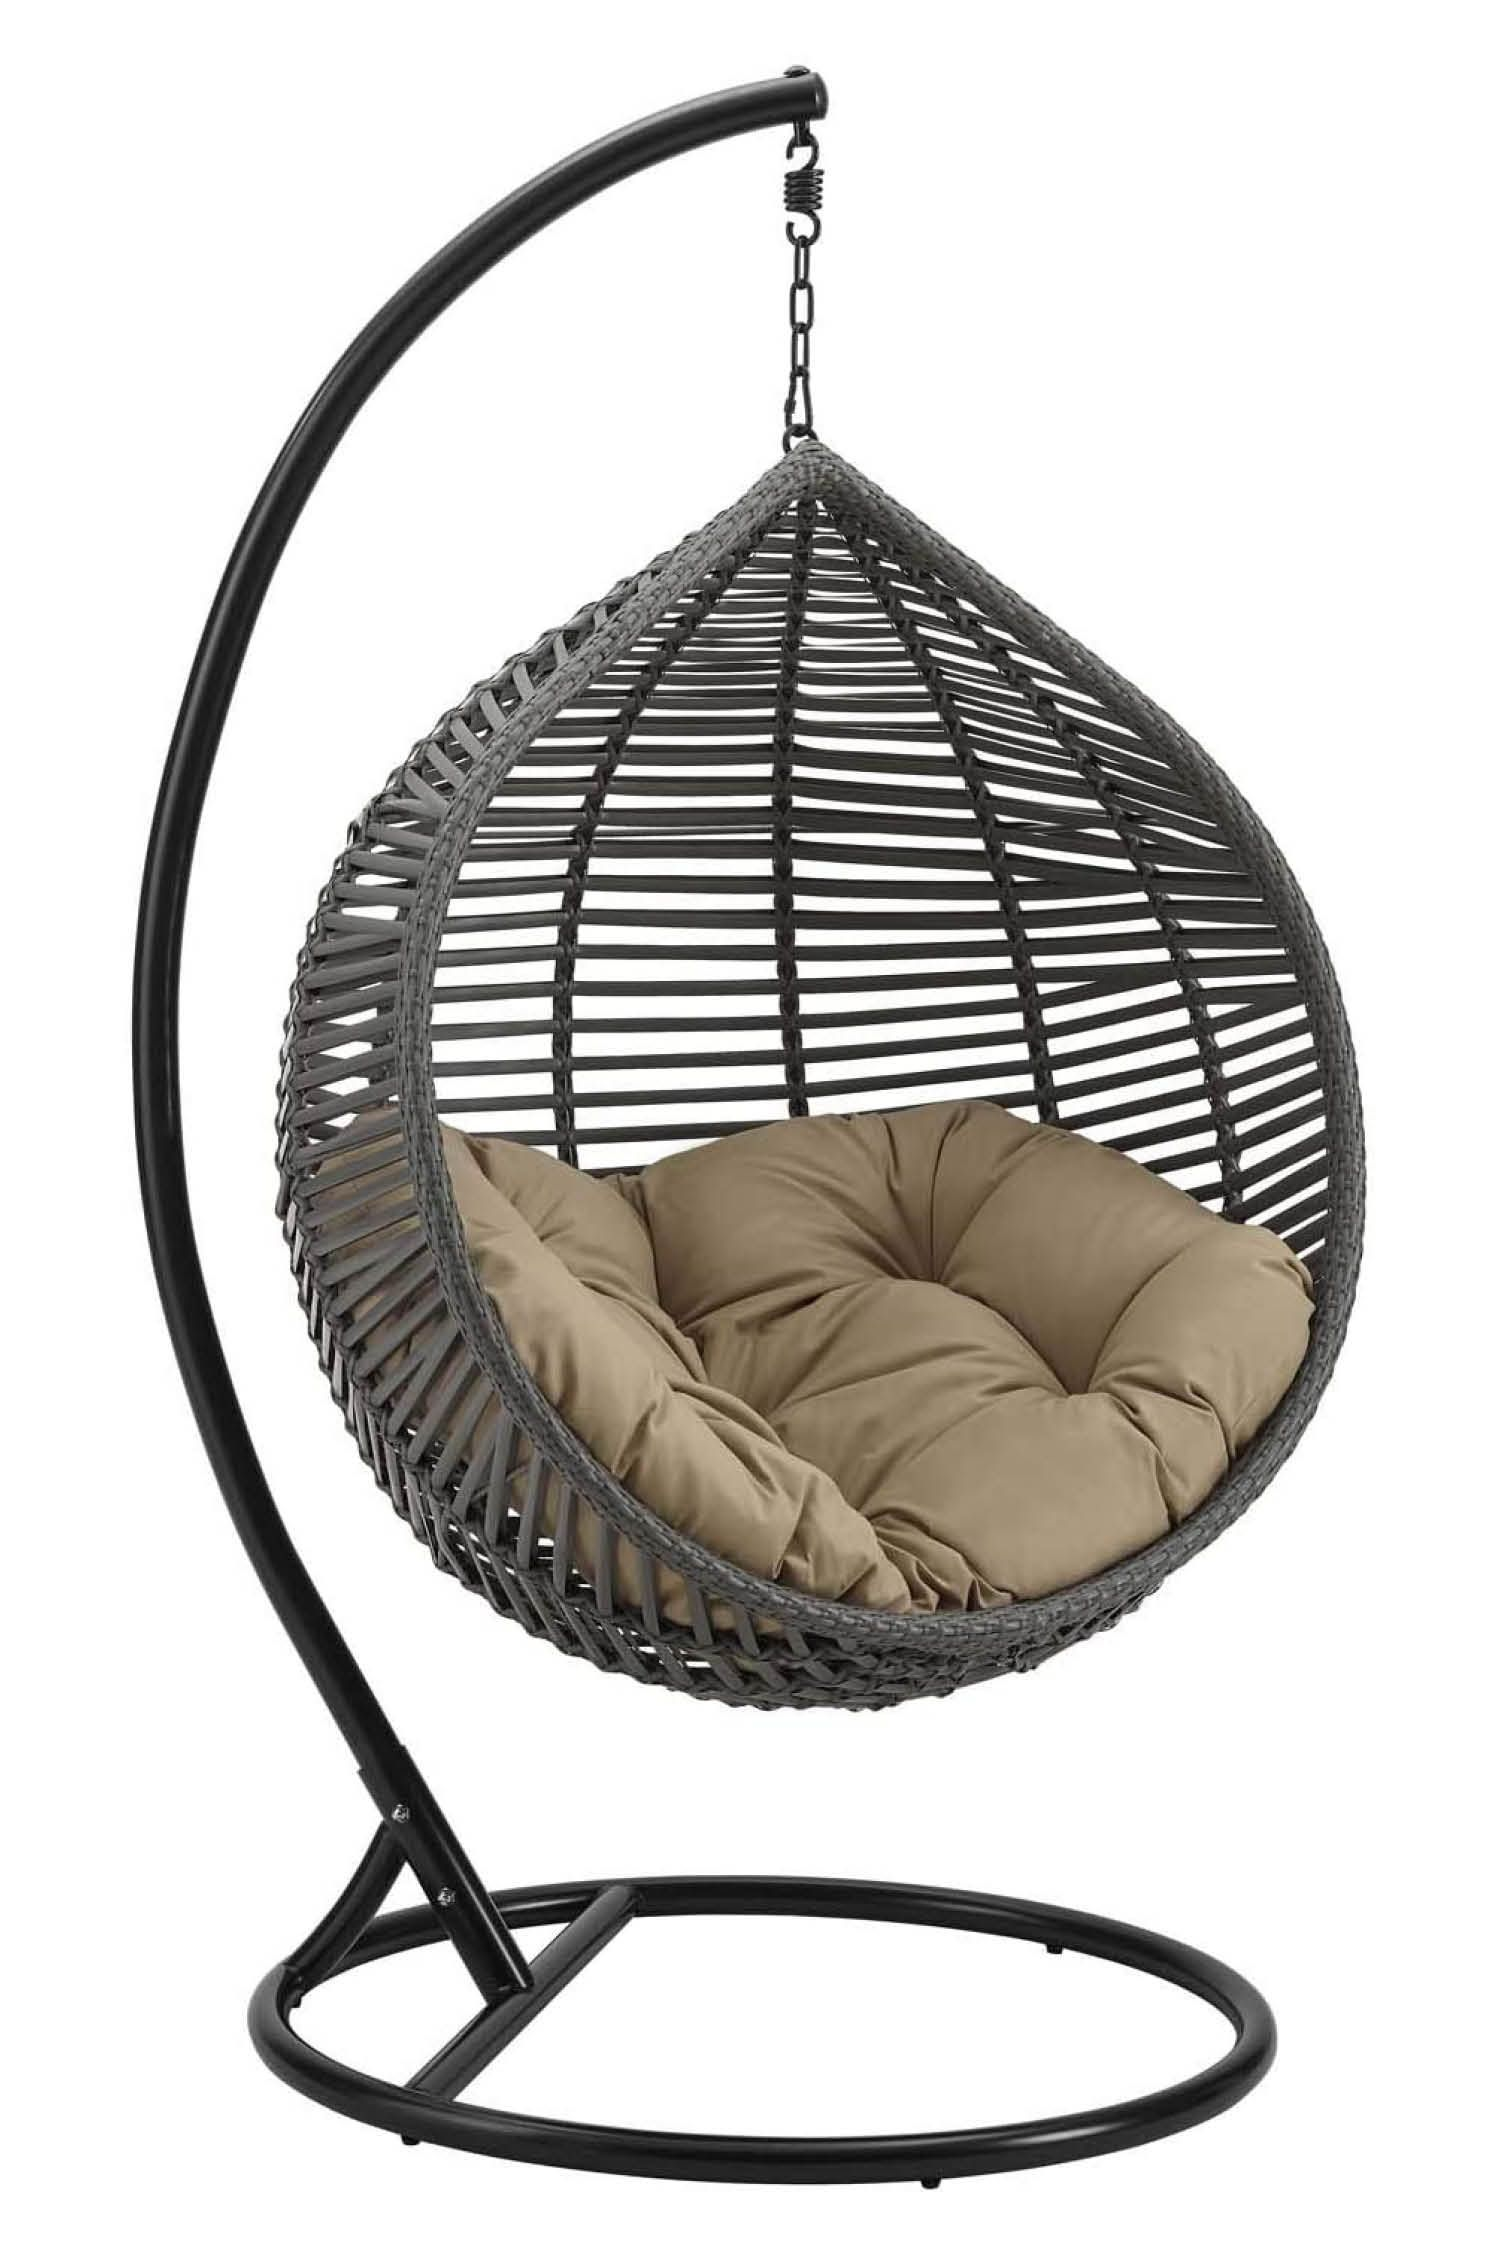 Best Swing Chairs With Stands 2021, Outdoor Swing Chairs With Stand